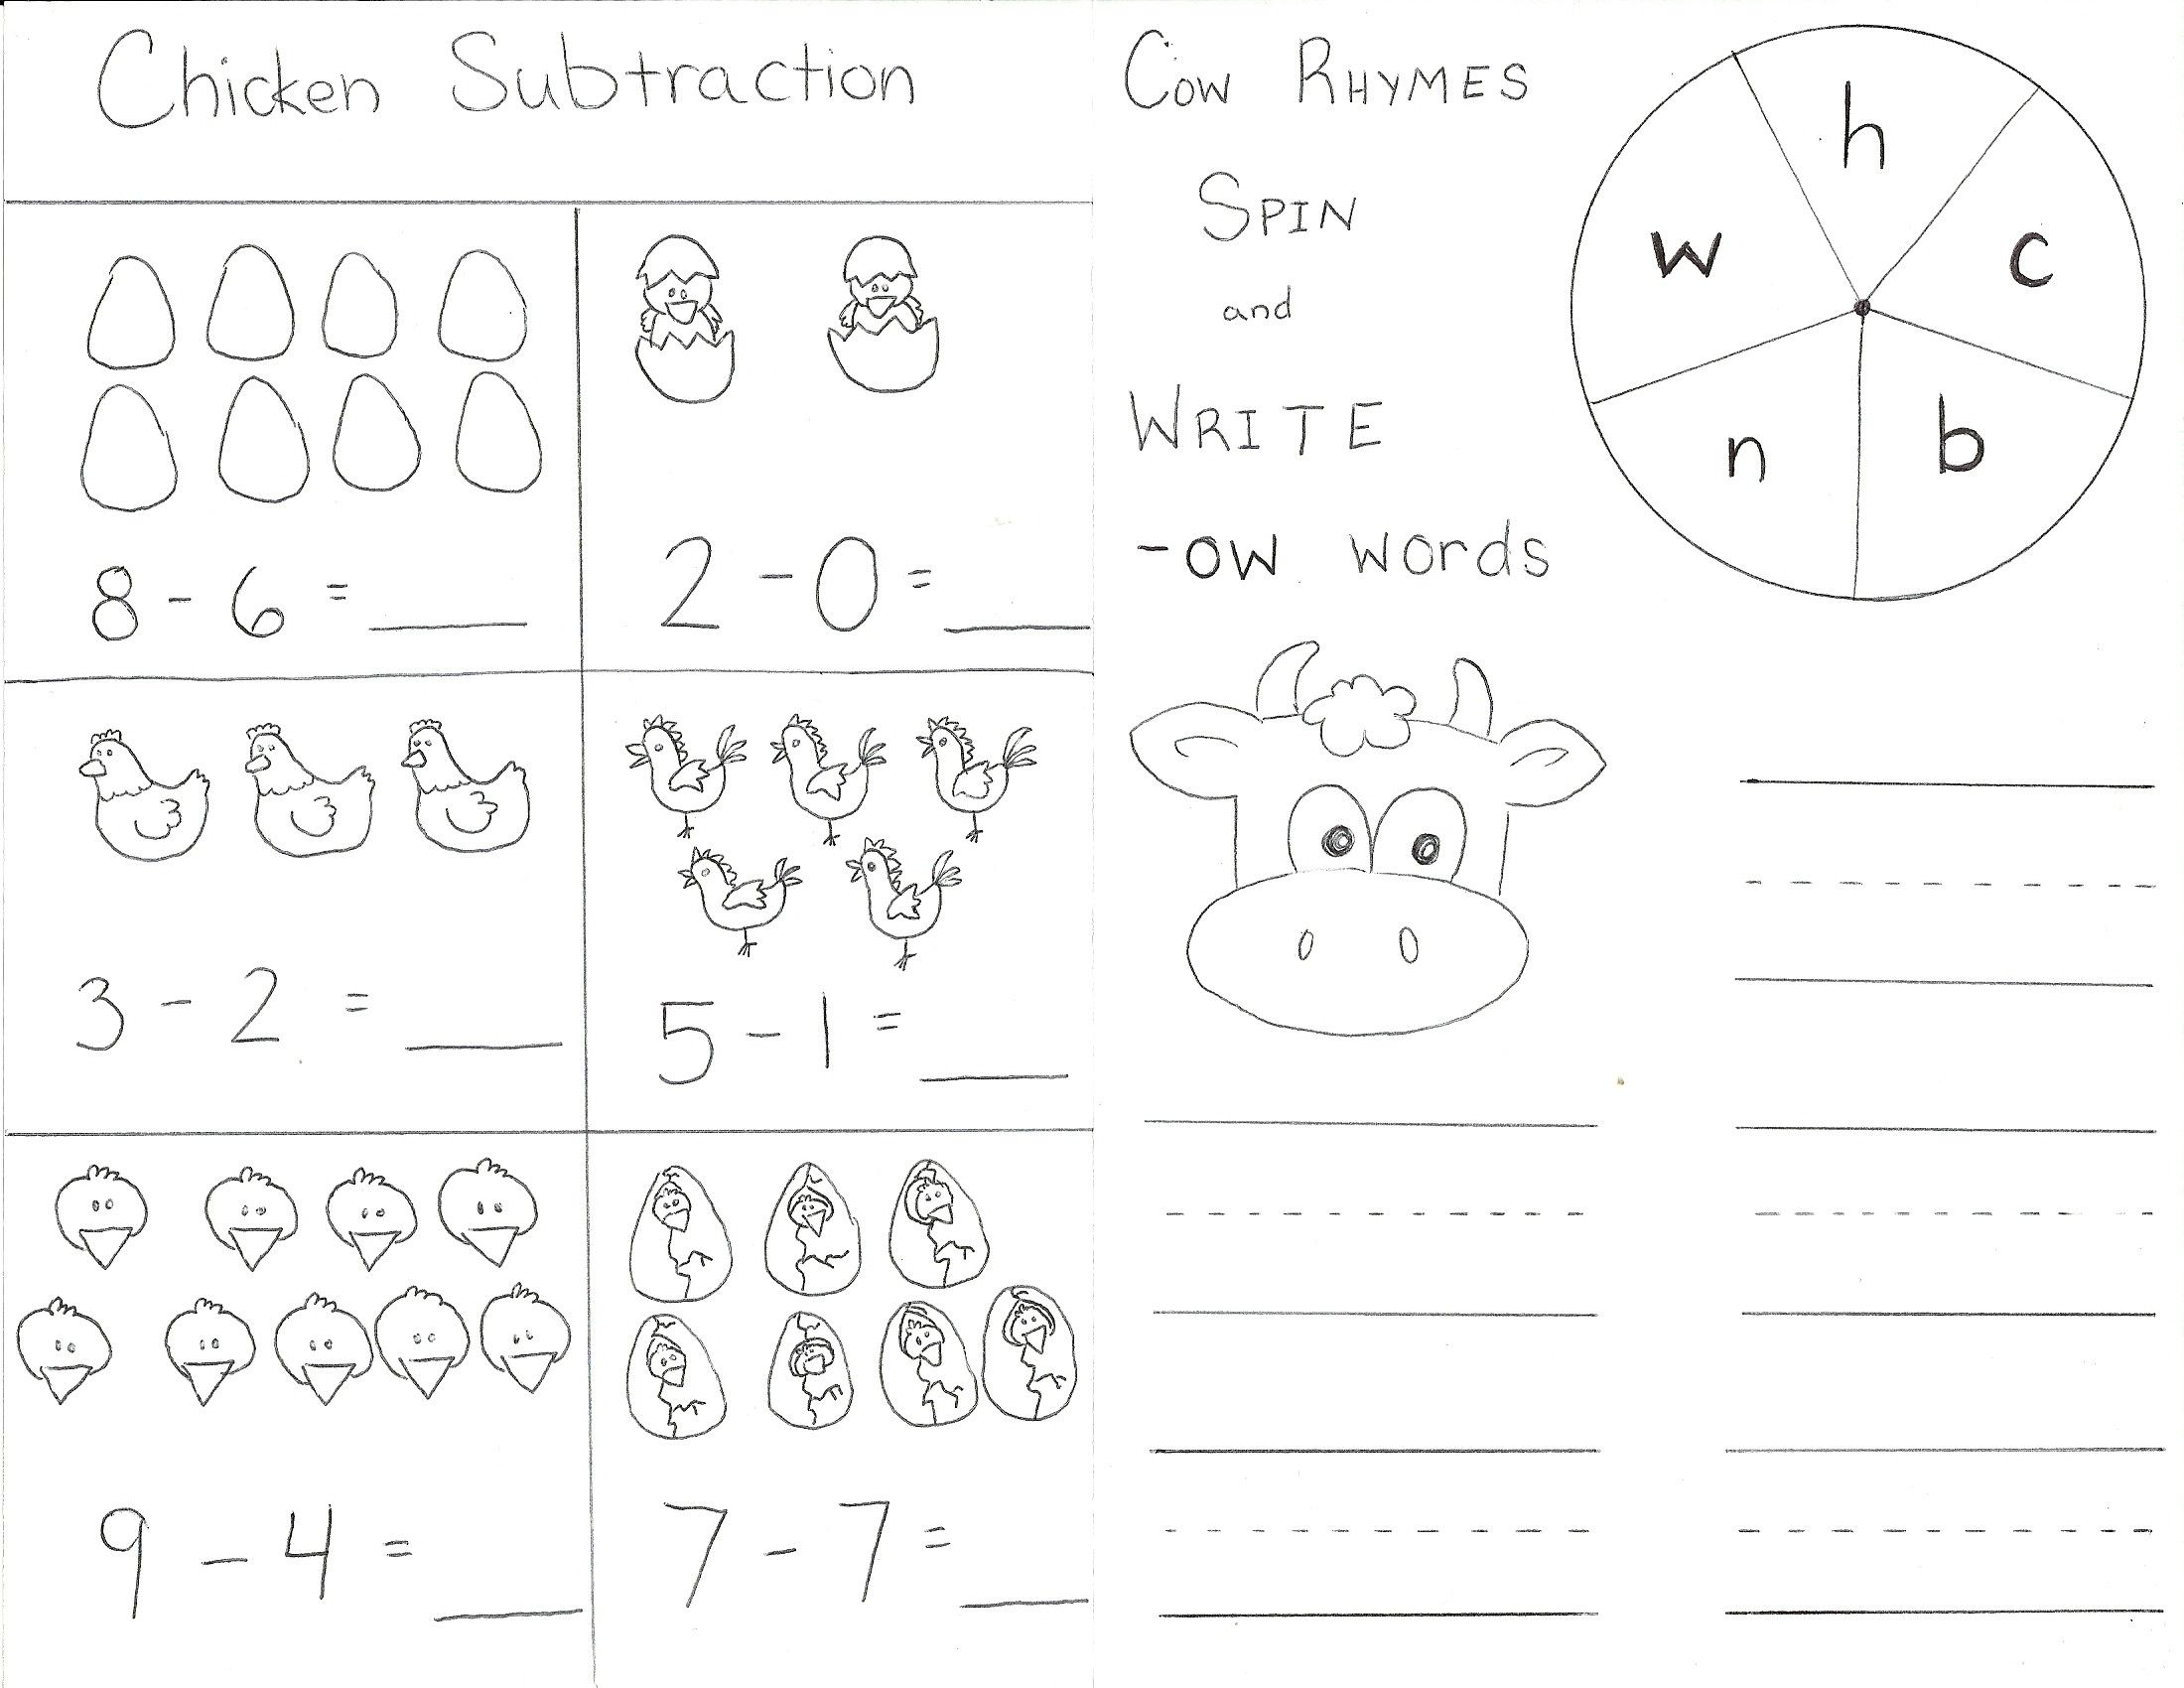 Cow And Chicken Worksheet 1 Spelling Worksheets Kindergarten Worksheets Free Kindergarten Worksheets [ 1700 x 2200 Pixel ]